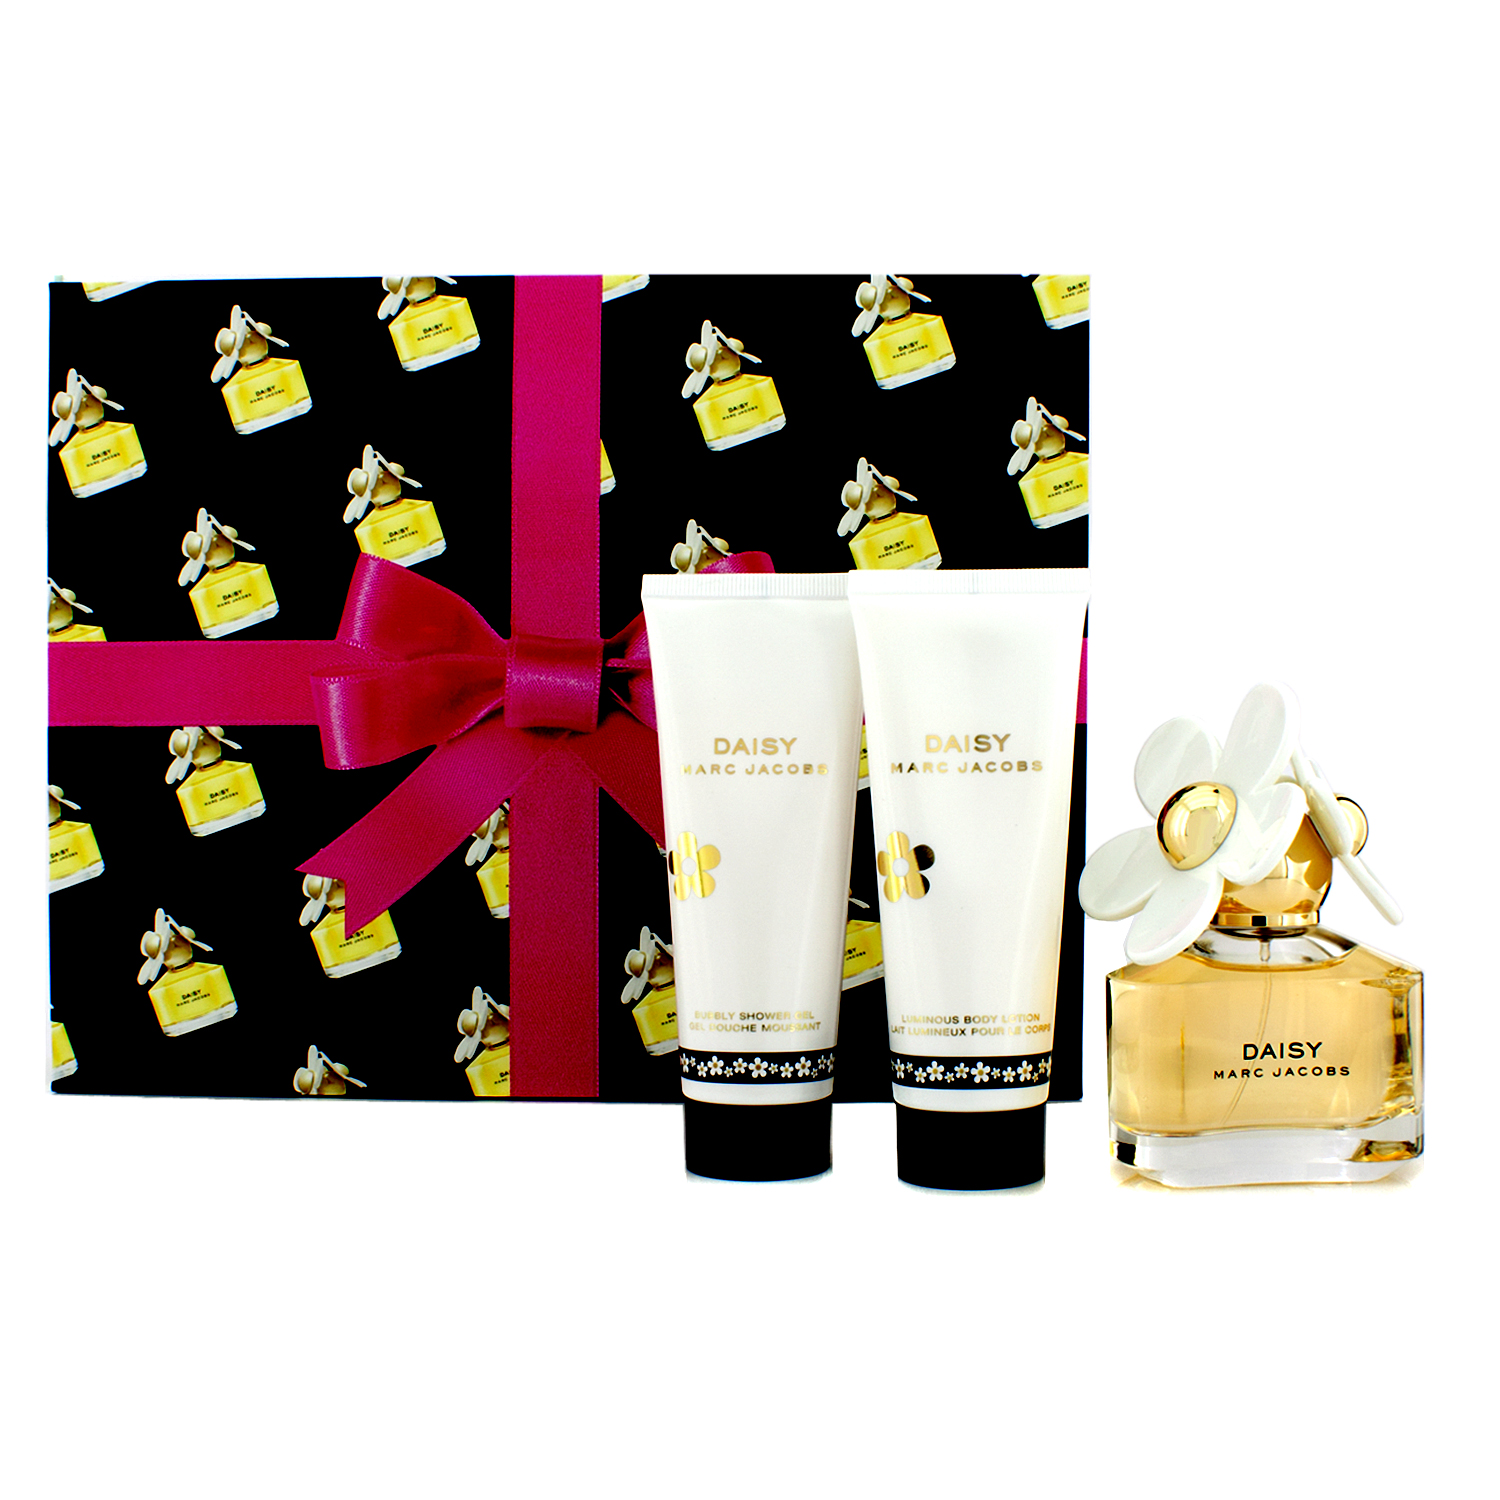 Marc Jacobs - Daisy Coffret: Eau De Toilette Spray 50ml/1.7oz + Body Lotion 75ml/2.5oz + Shower Gel 75ml/2.5oz - 3pcs